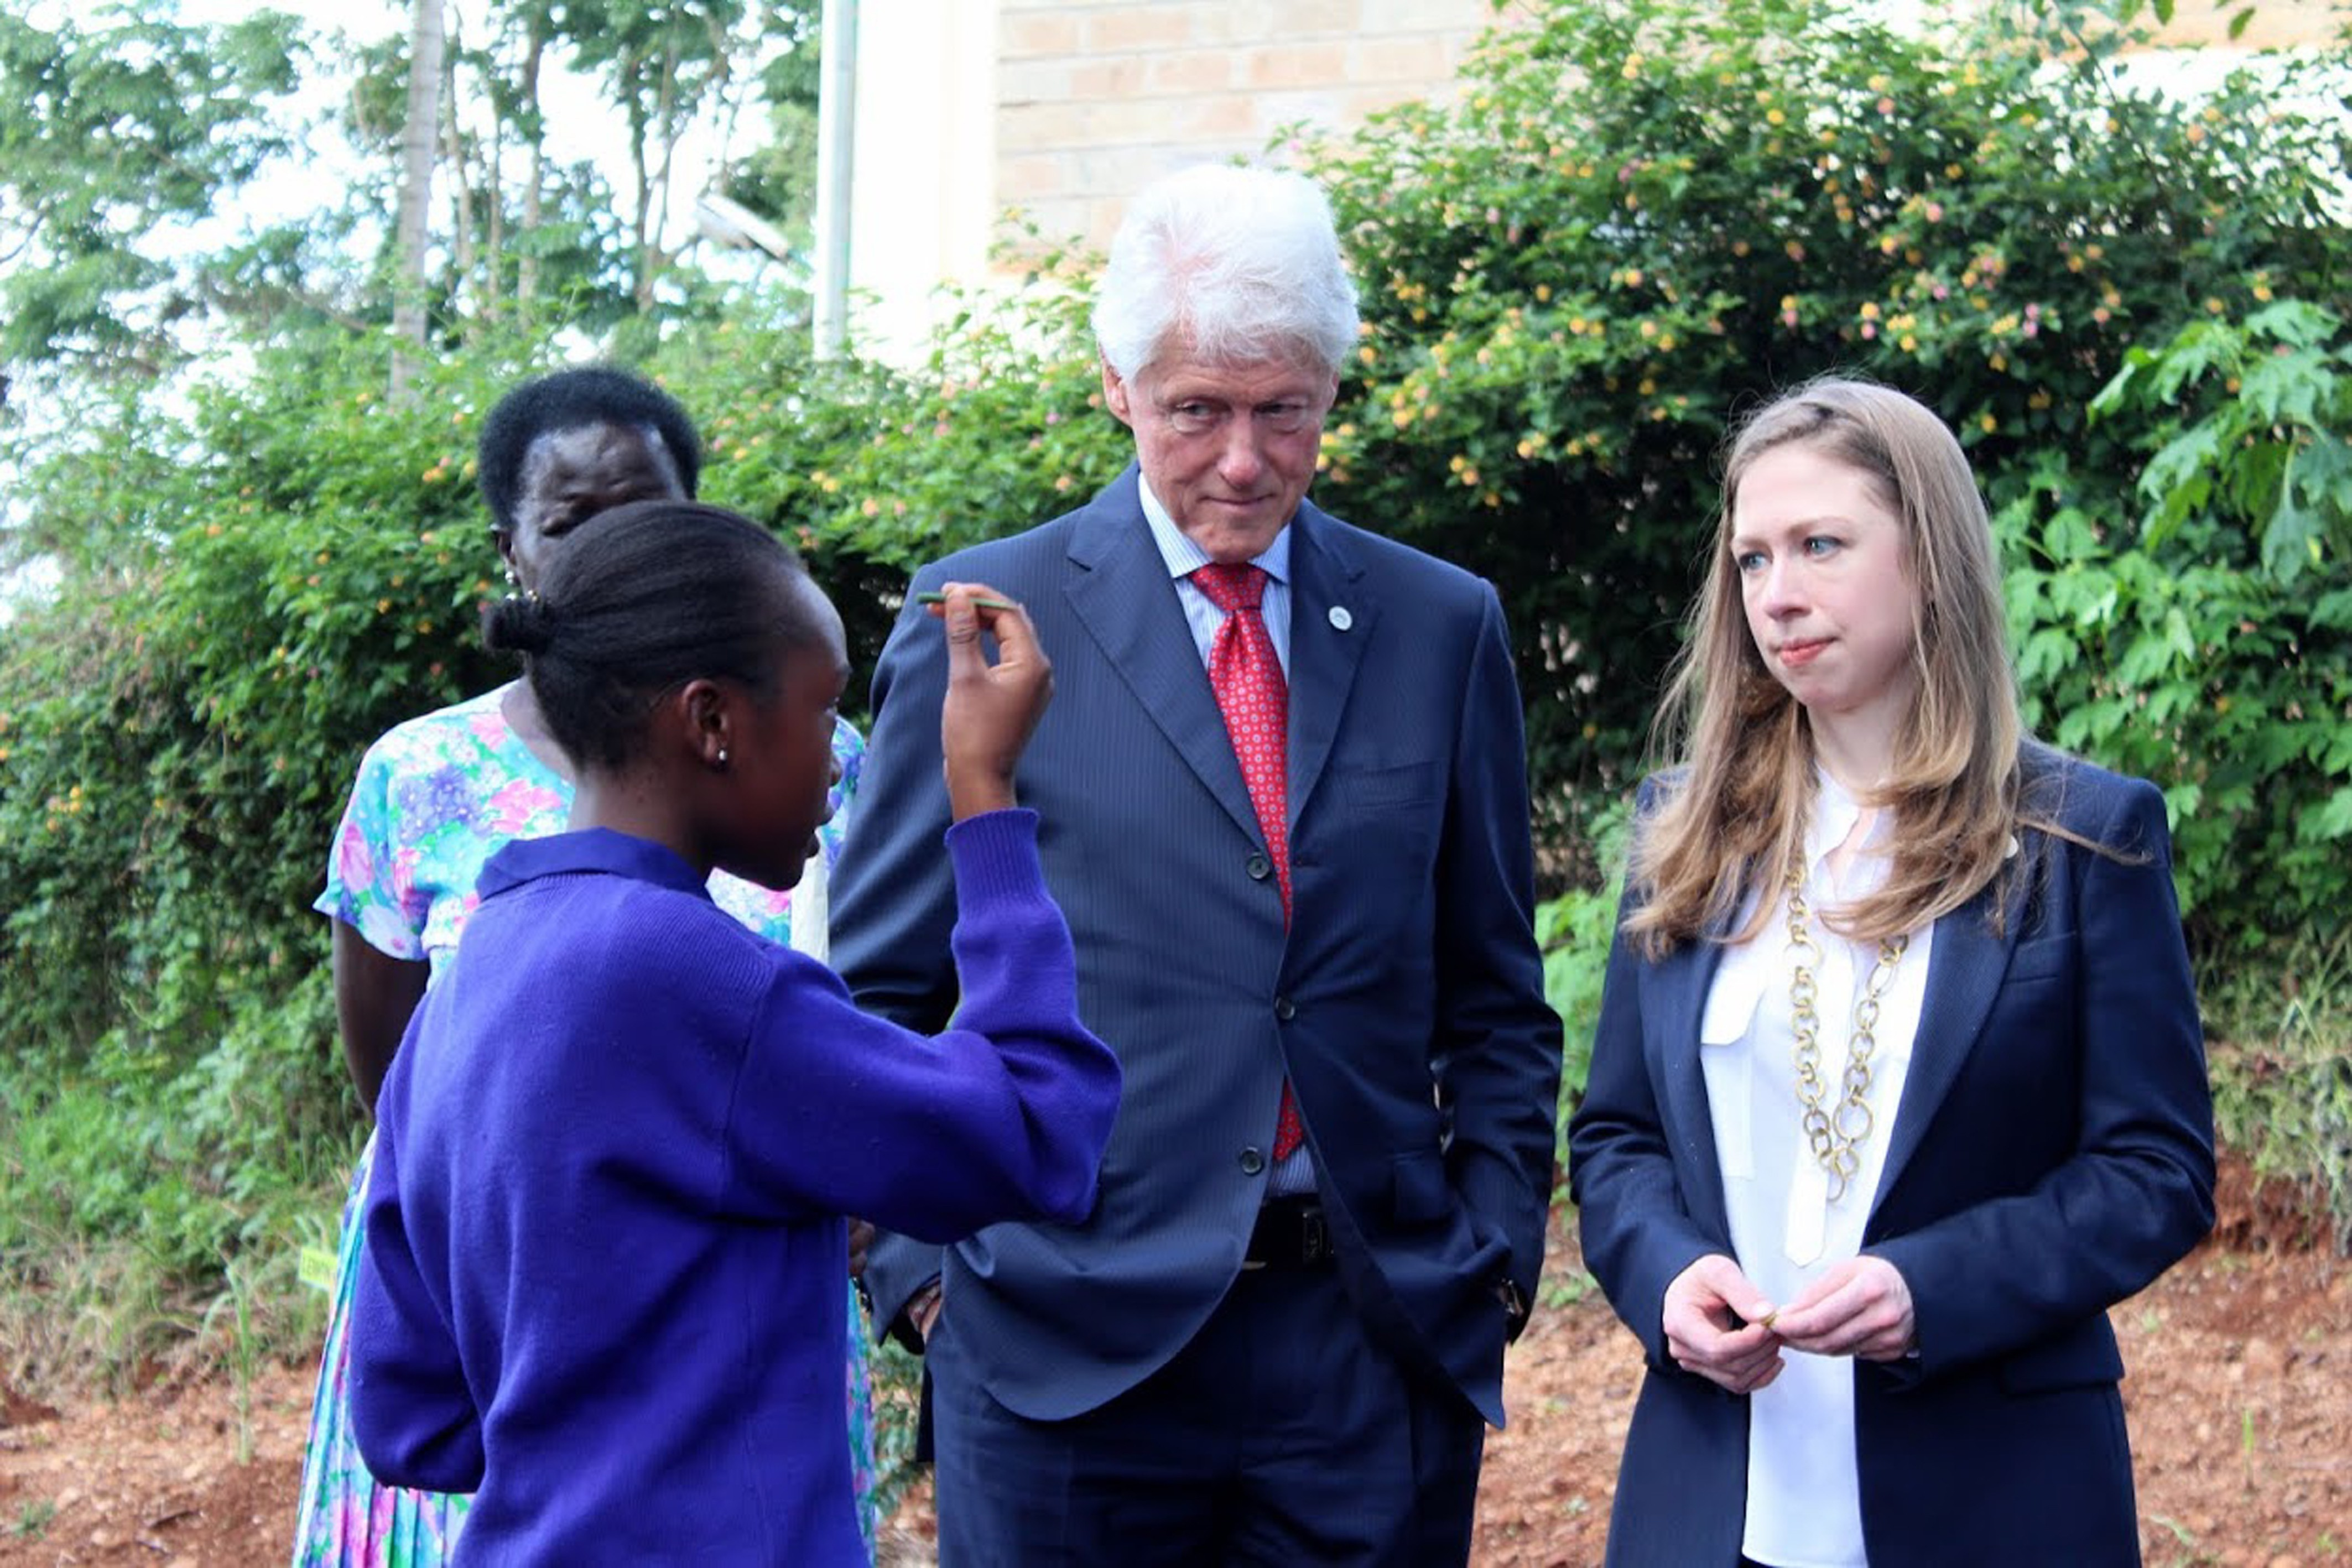 NAIROBI, KENYA - MAY 1: Former US President Bill Clinton (2-R) and his daughter Chelsea Clinton (R) are guided as they visit a herb garden at Farasi Lane primary school in Nairobi, Kenya on 01 May 2015. Former US president Bill Clinton and his daughter Chelsea Clinton are on an African tour to visit several sites of Clinton Foundation projects in Tanzania, Kenya and Liberia concluding with the Clinton Global Initiative Middle East & Africa Meeting (CGI MEA) in Morocco. (Photo by Magdalene Mukami/Anadolu Agency/Getty Images)